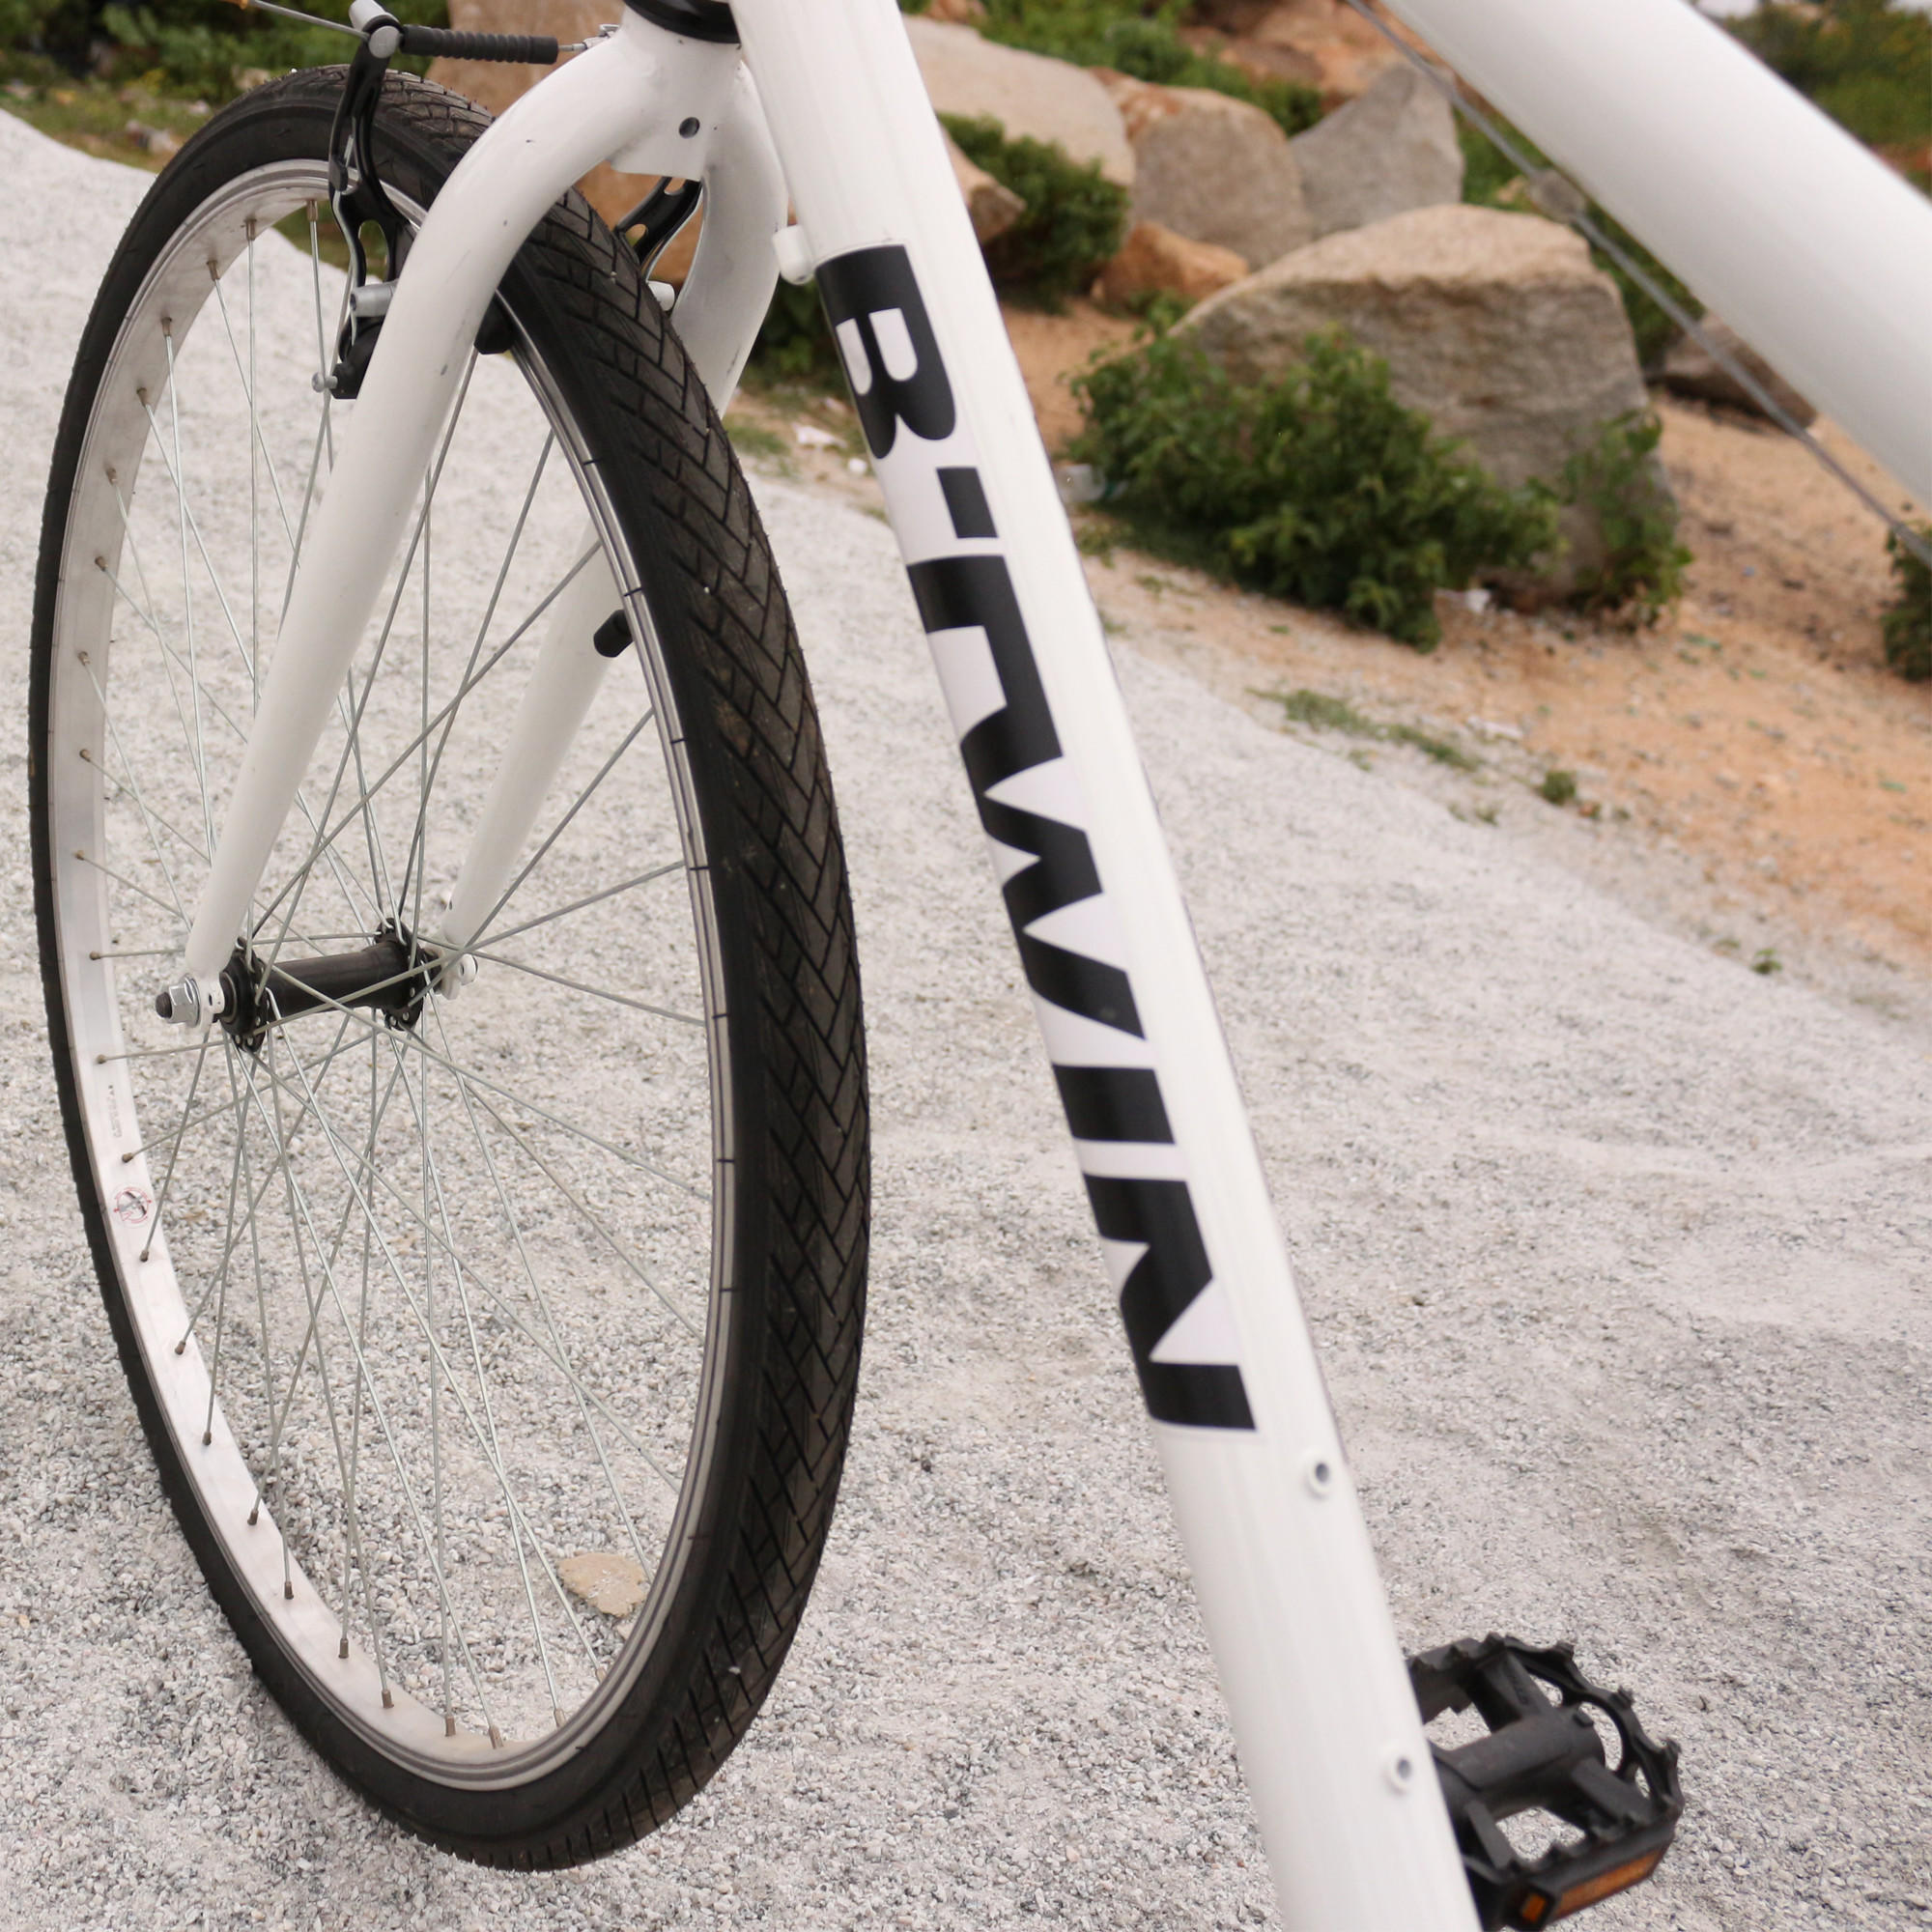 BTWIN RIVERSIDE 100 HYBRID CYCLE